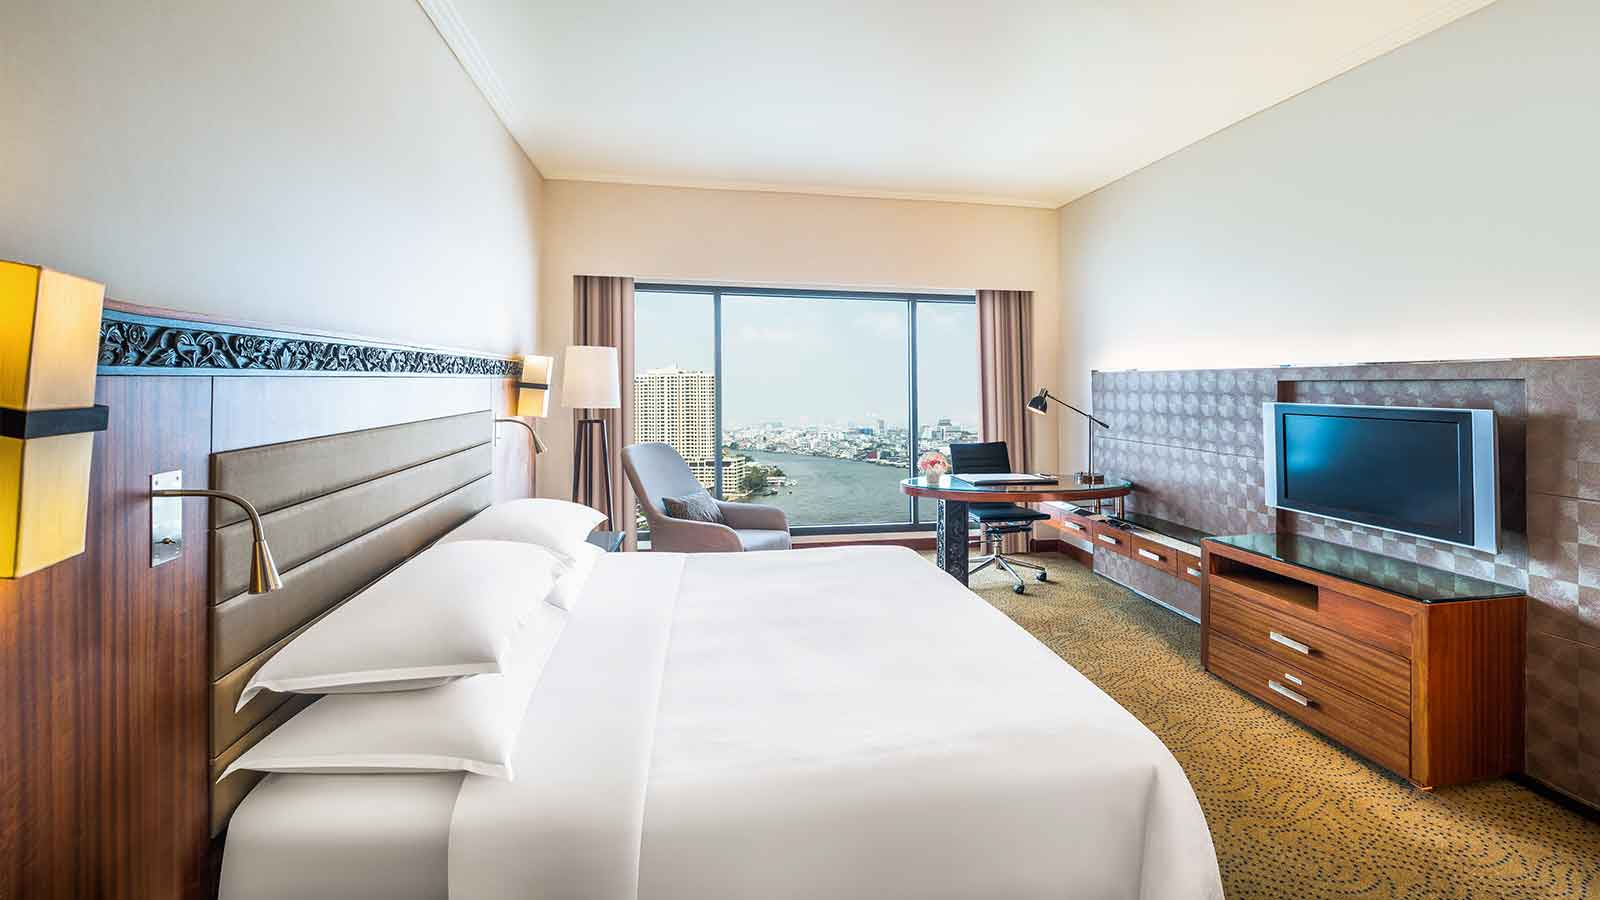 Deluxe Riverview Room King bed - Royal Orchid Sheraton Hotel Bangkok